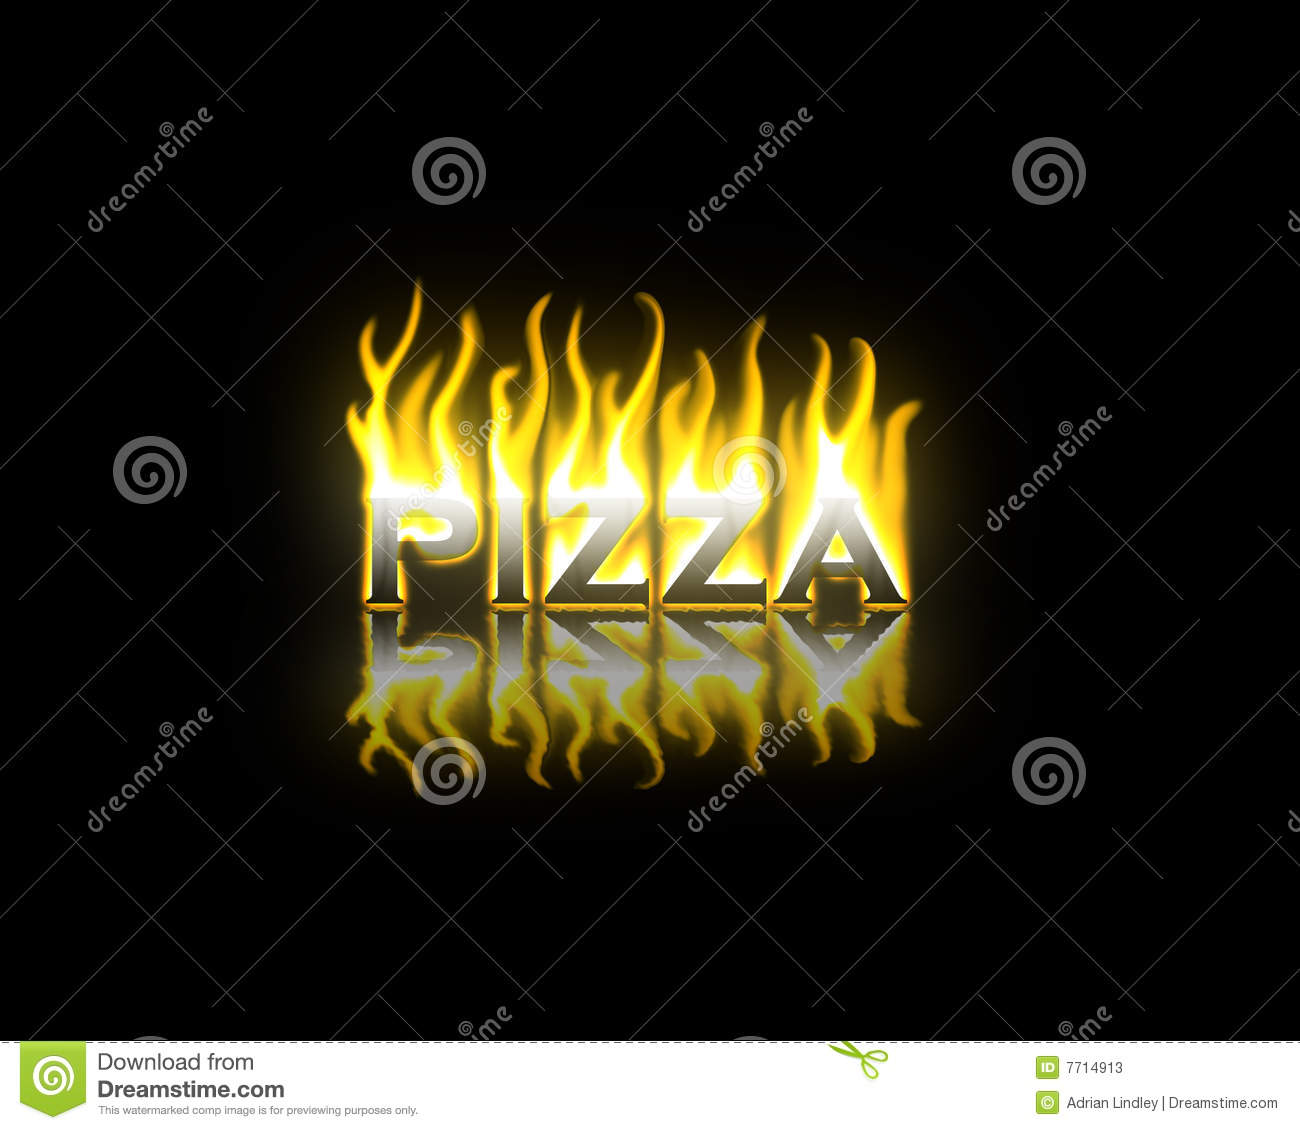 Pizza on Fire stock illustration  Illustration of woodfired